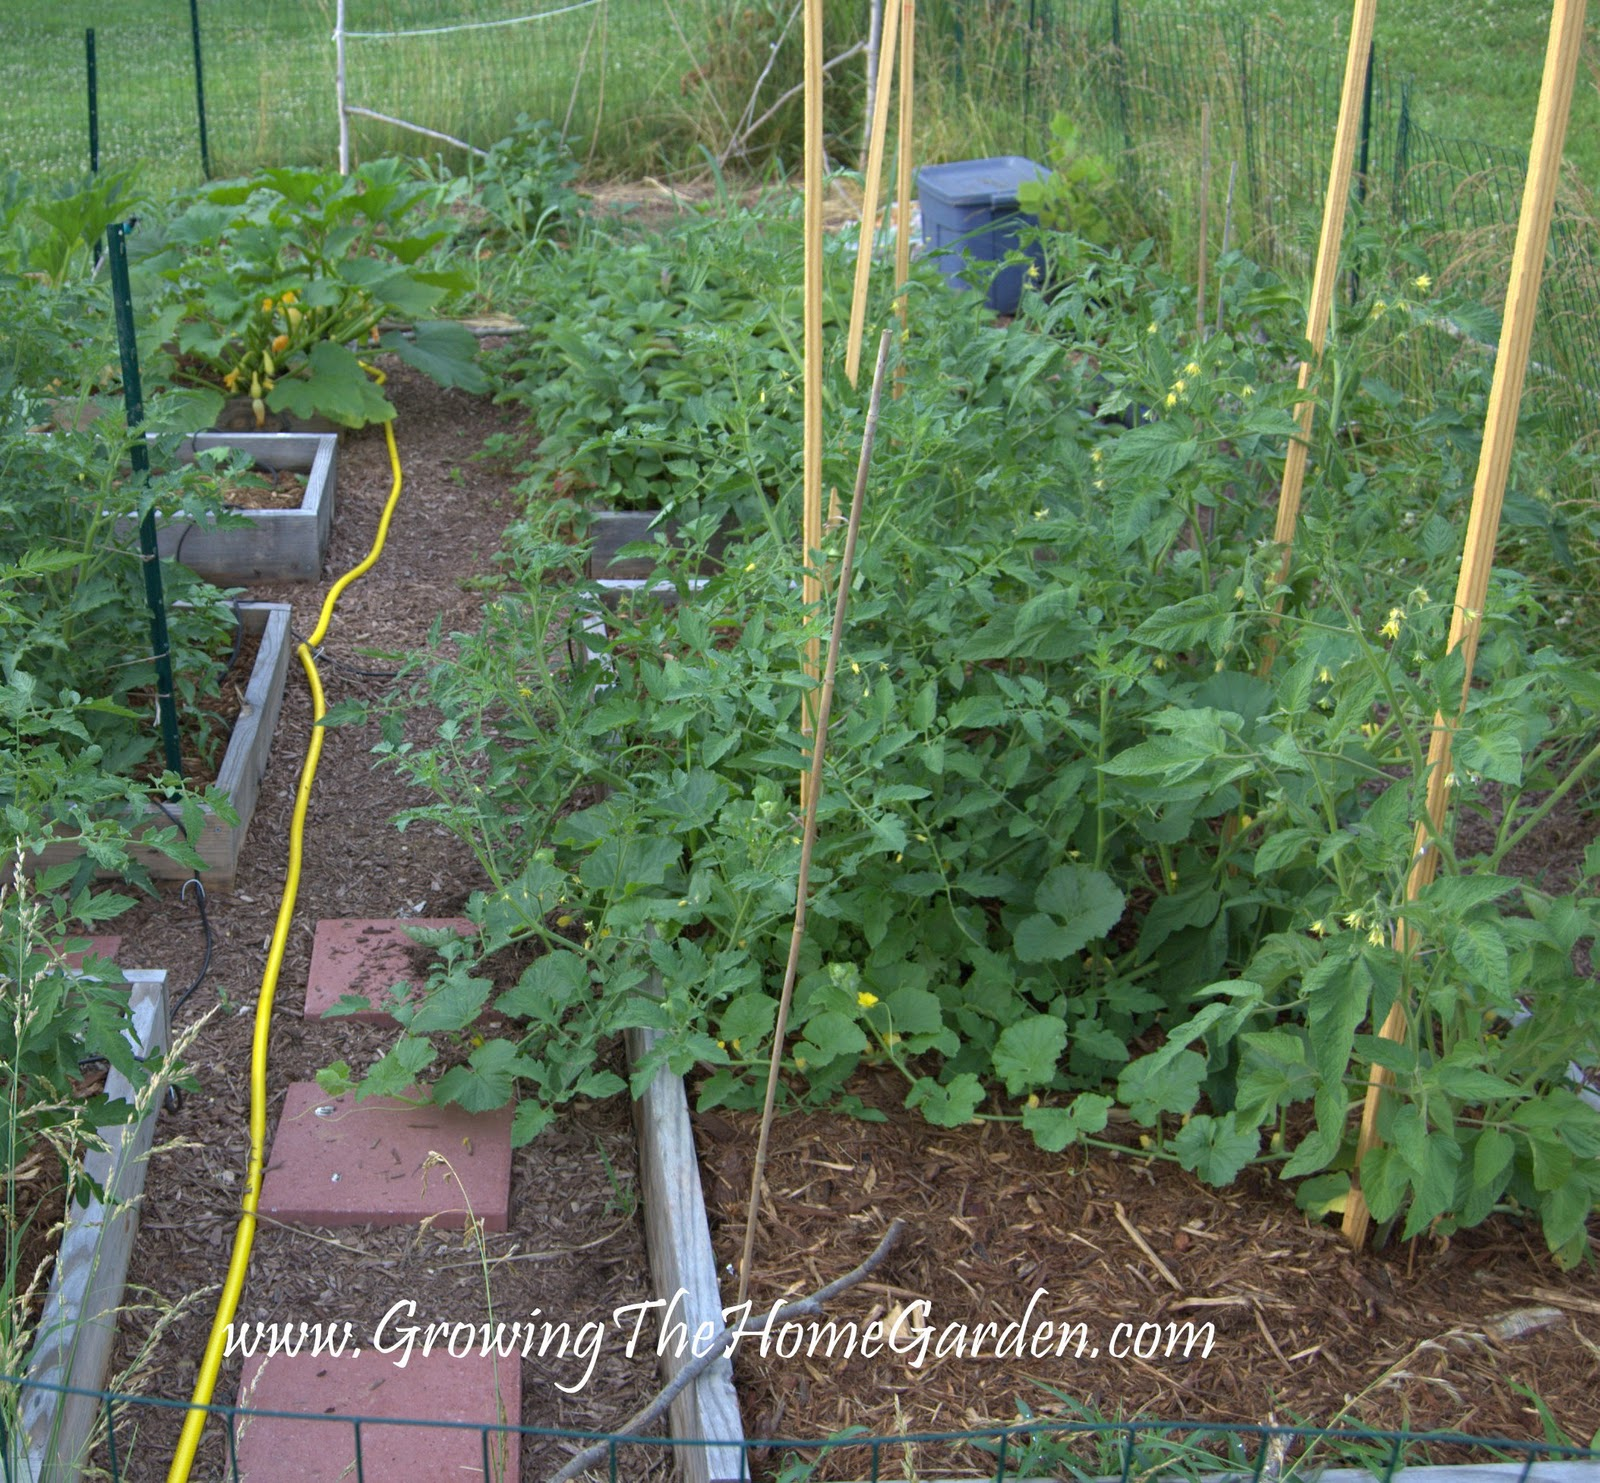 11 tips for designing a raised bed vegetable garden layout 11 tips to consider when designing a raised bed vegetable garden layout workwithnaturefo